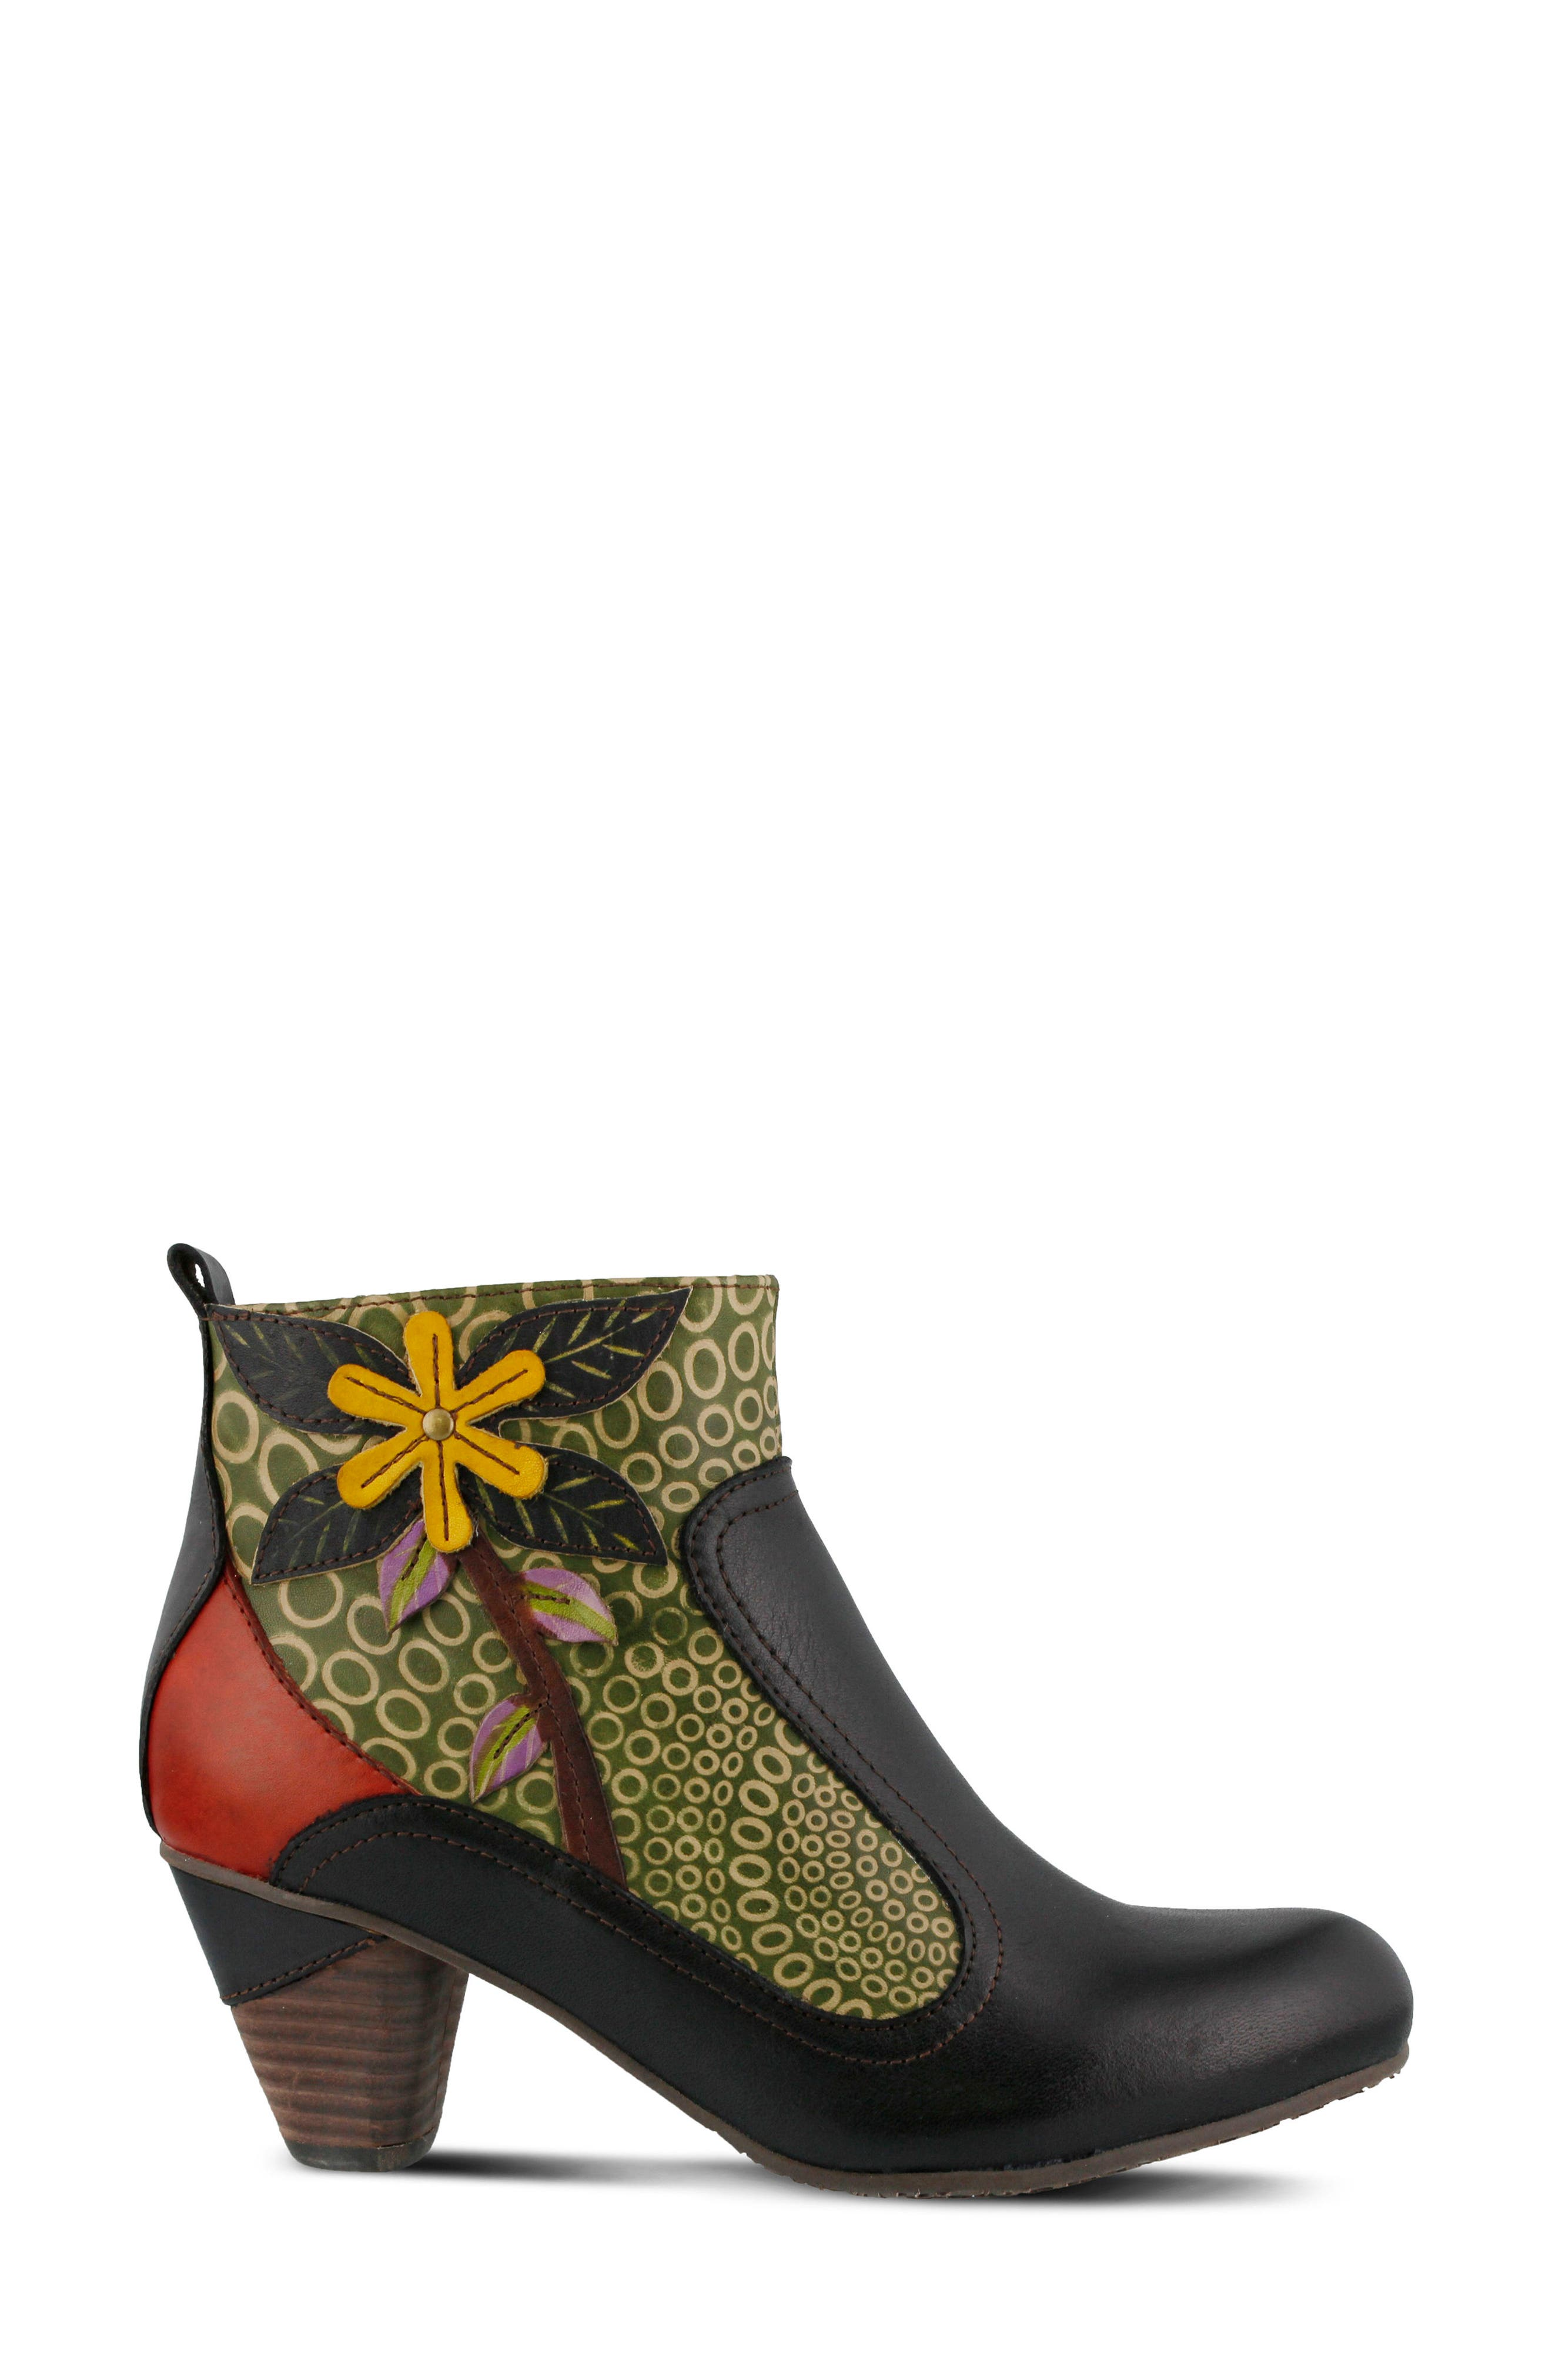 Alternate Image 3  - L'Artiste Dramatic Boot (Women)